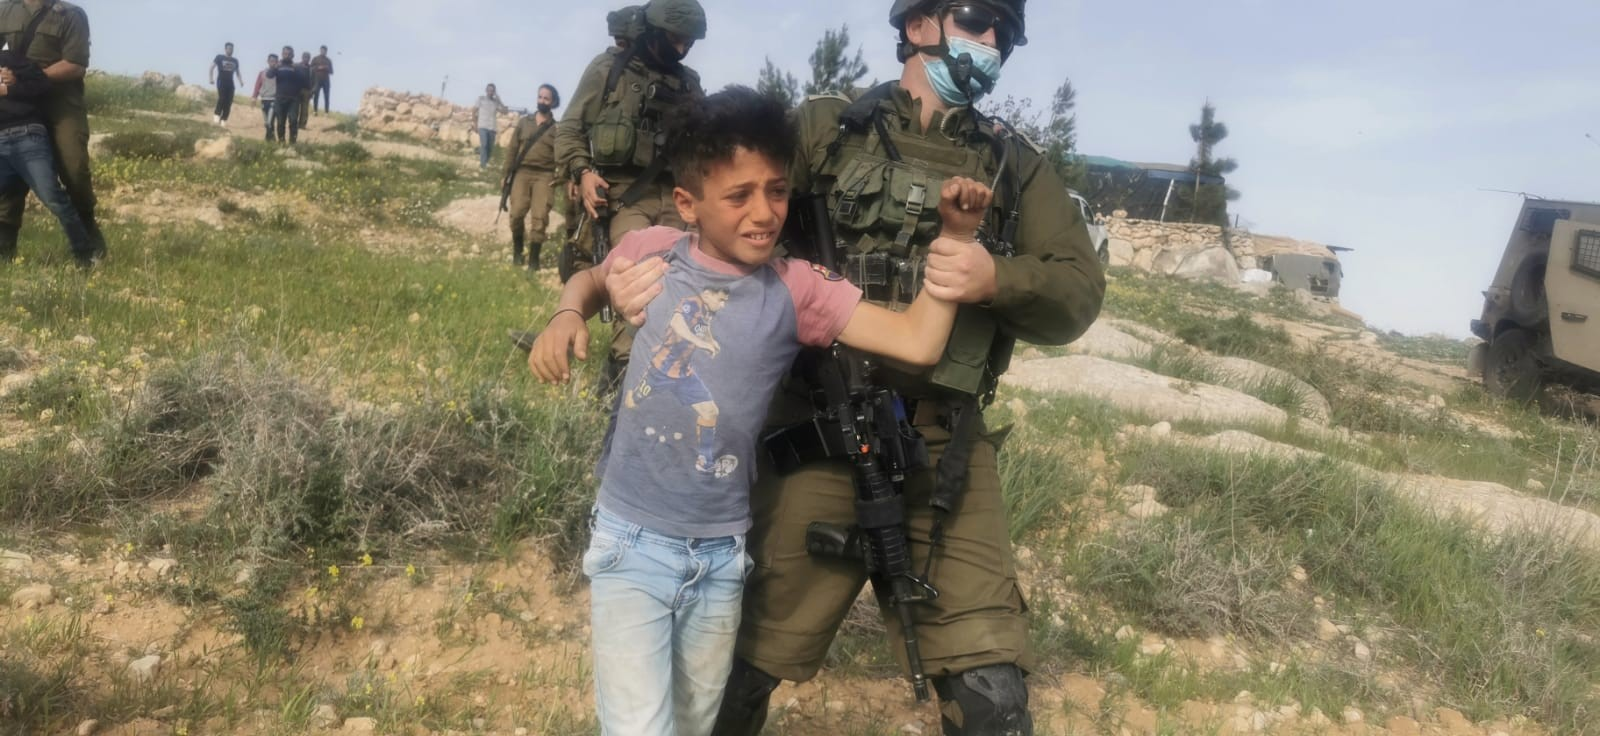 An Israeli soldier detains a Palestinian child close to al-Rakiz in the south Hebron hills, Wednesday, March 10, 2021.